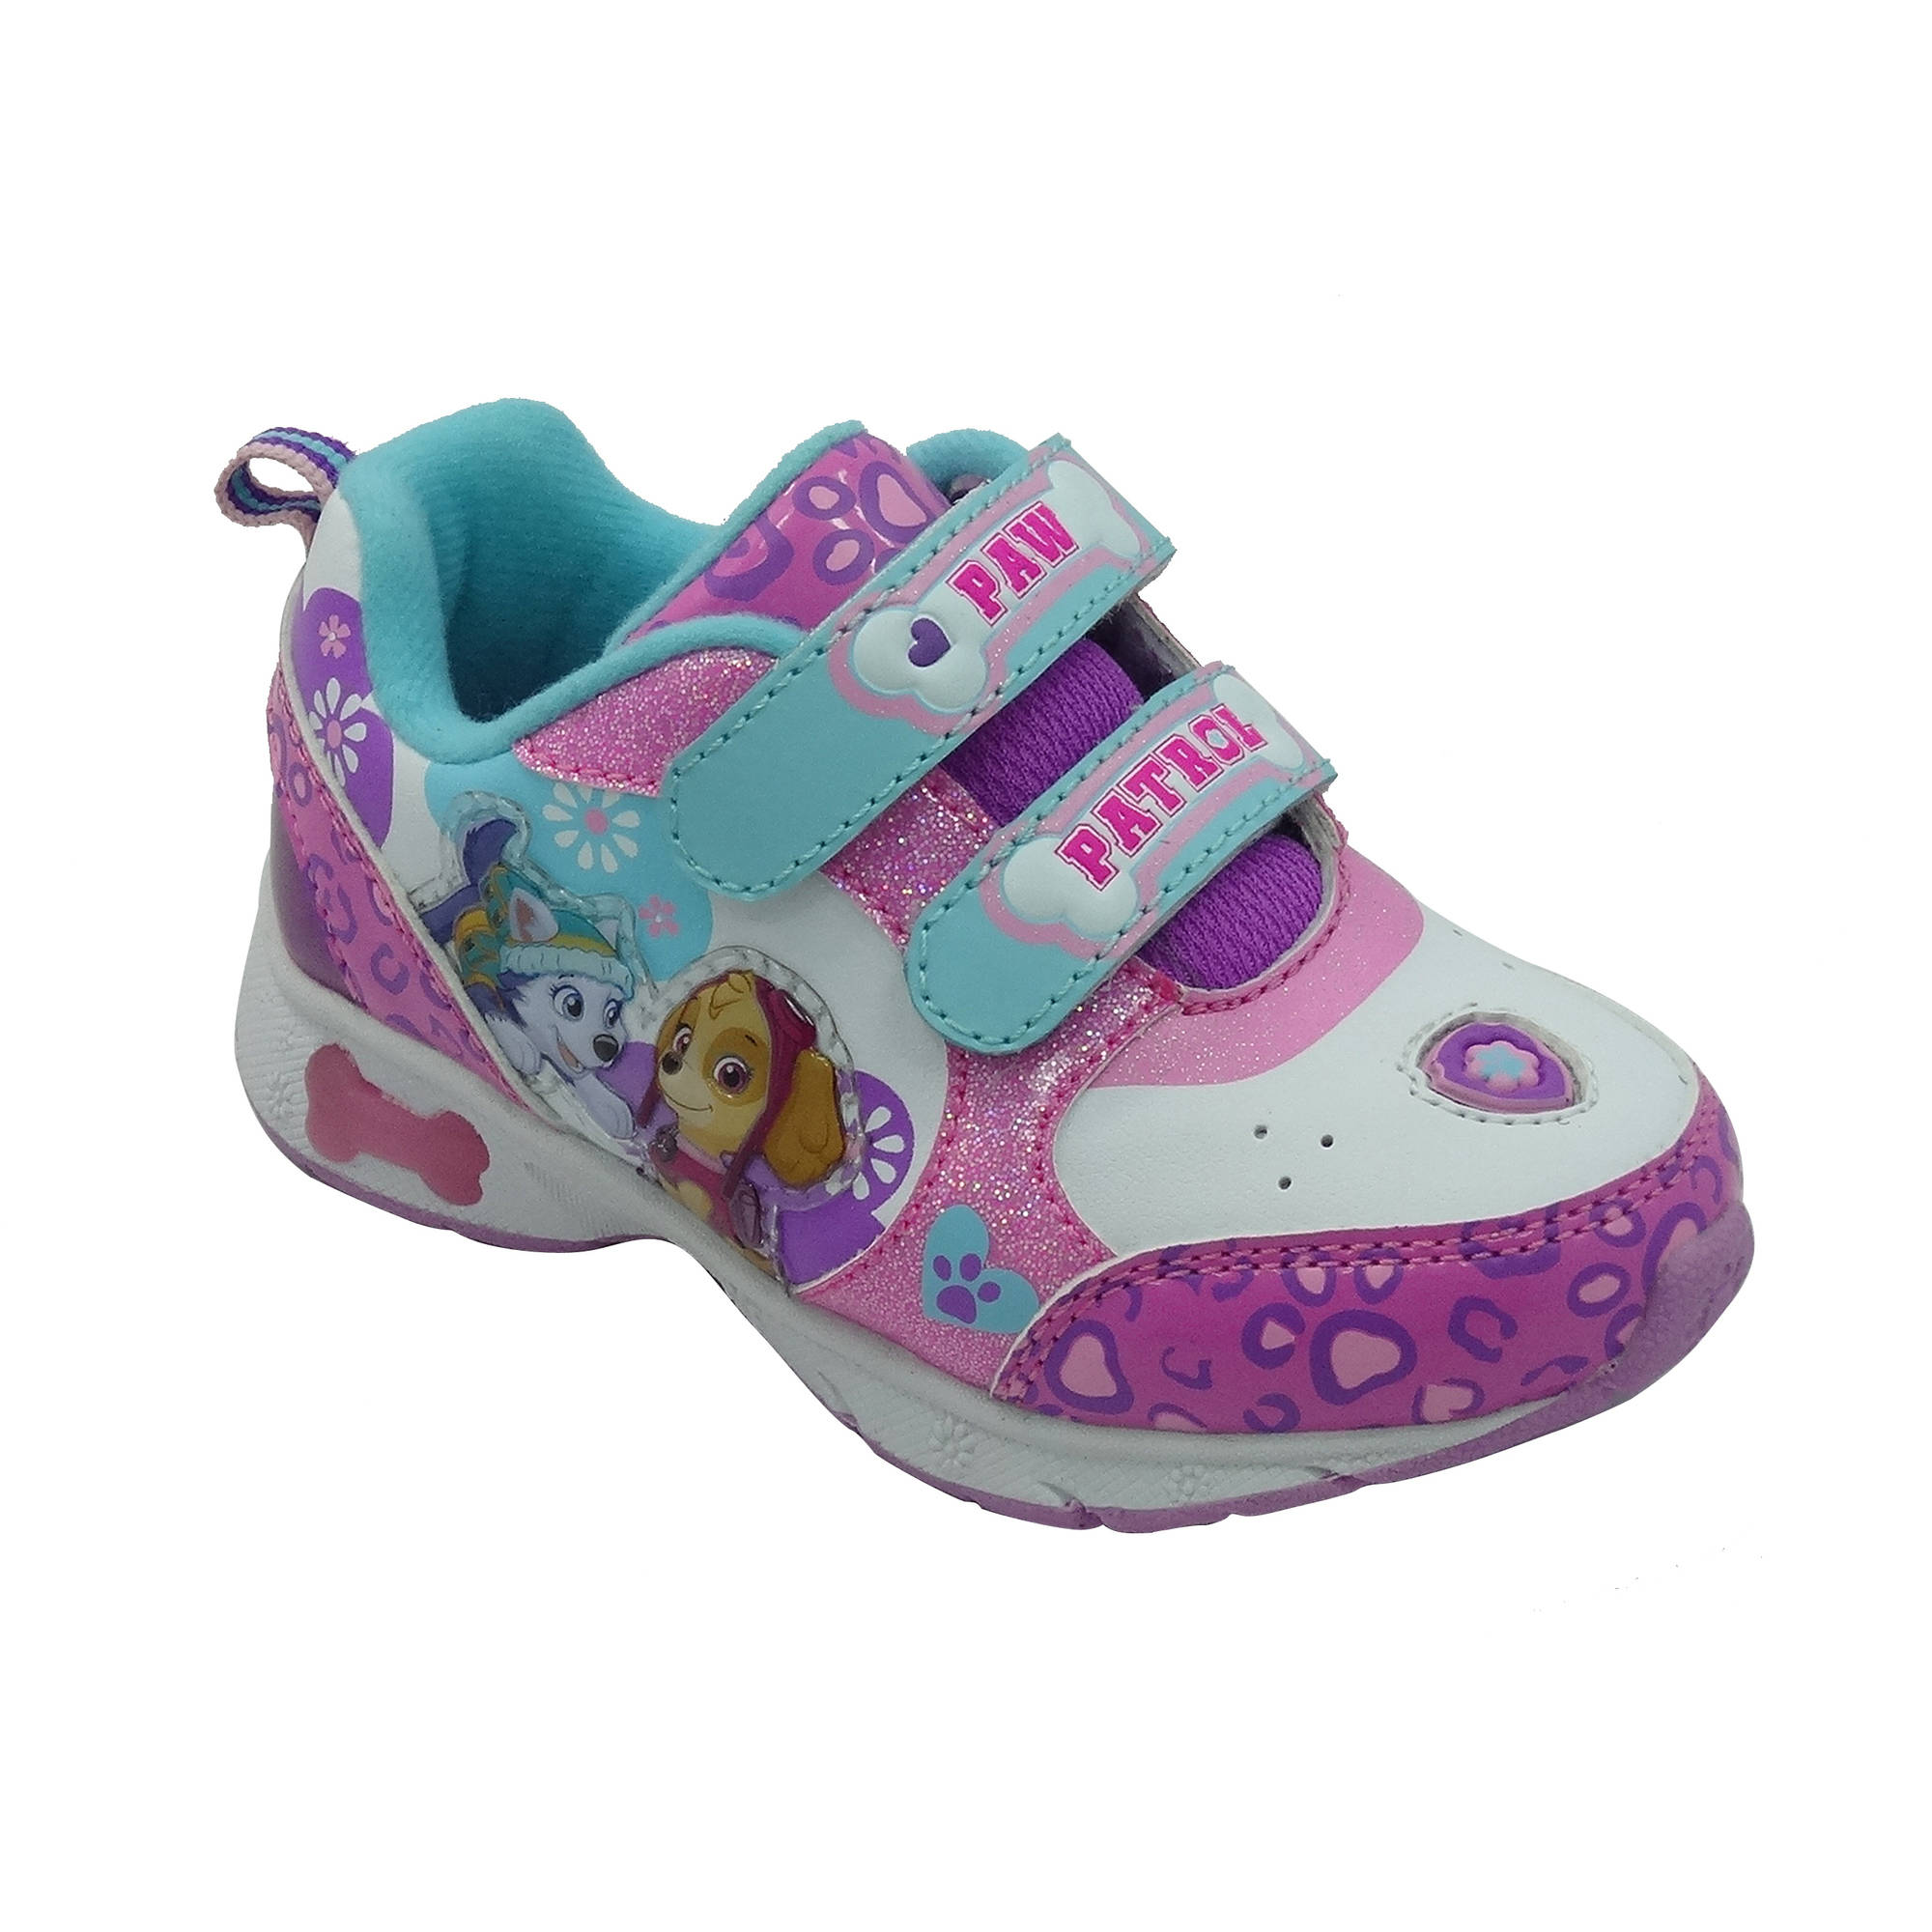 Paw Patrol Toddler Girls' Canvas Sneaker